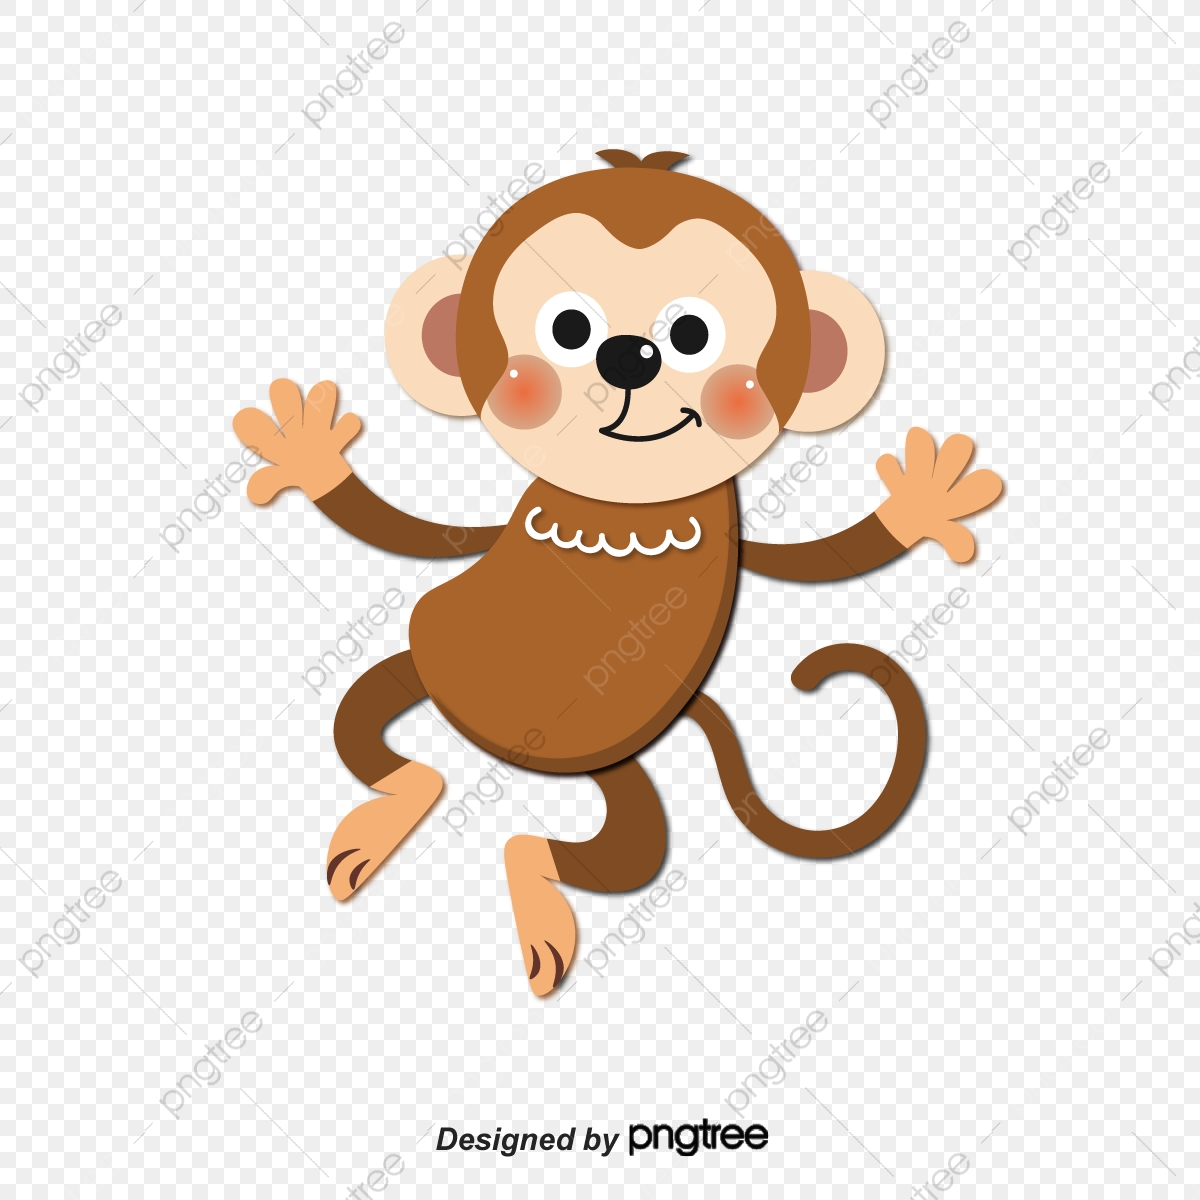 Cute Monkey Vector, Monkey, Animal, Lovely PNG and Vector.